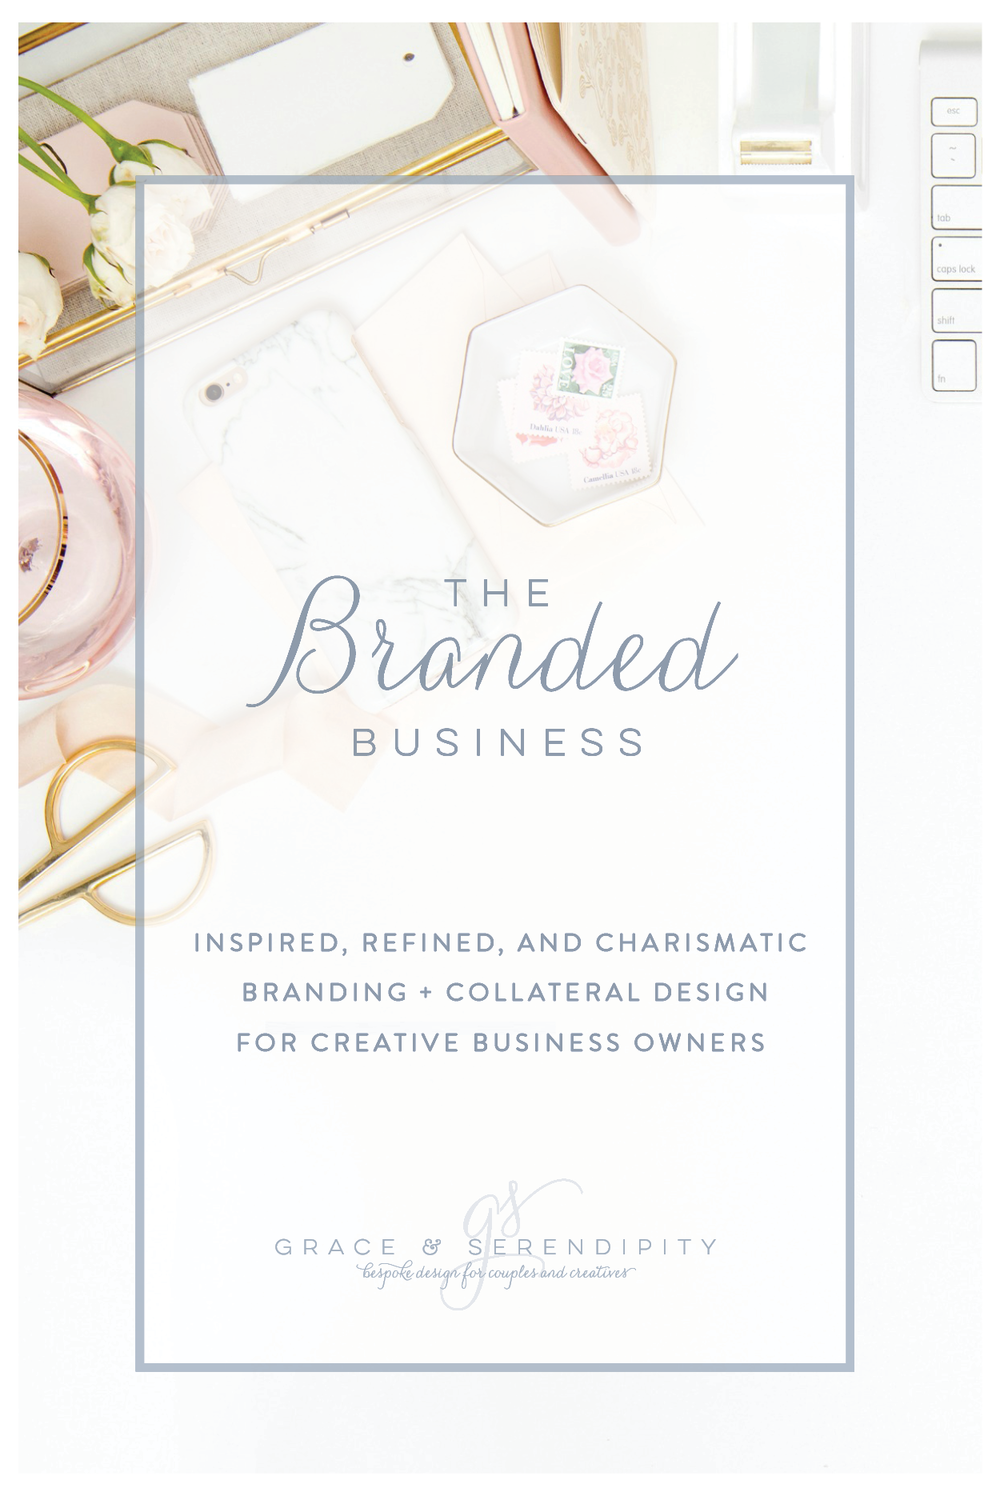 Business Branding by Grace and Serendipity - inspired, refined, and charismatic branding by Grace and Serendipity